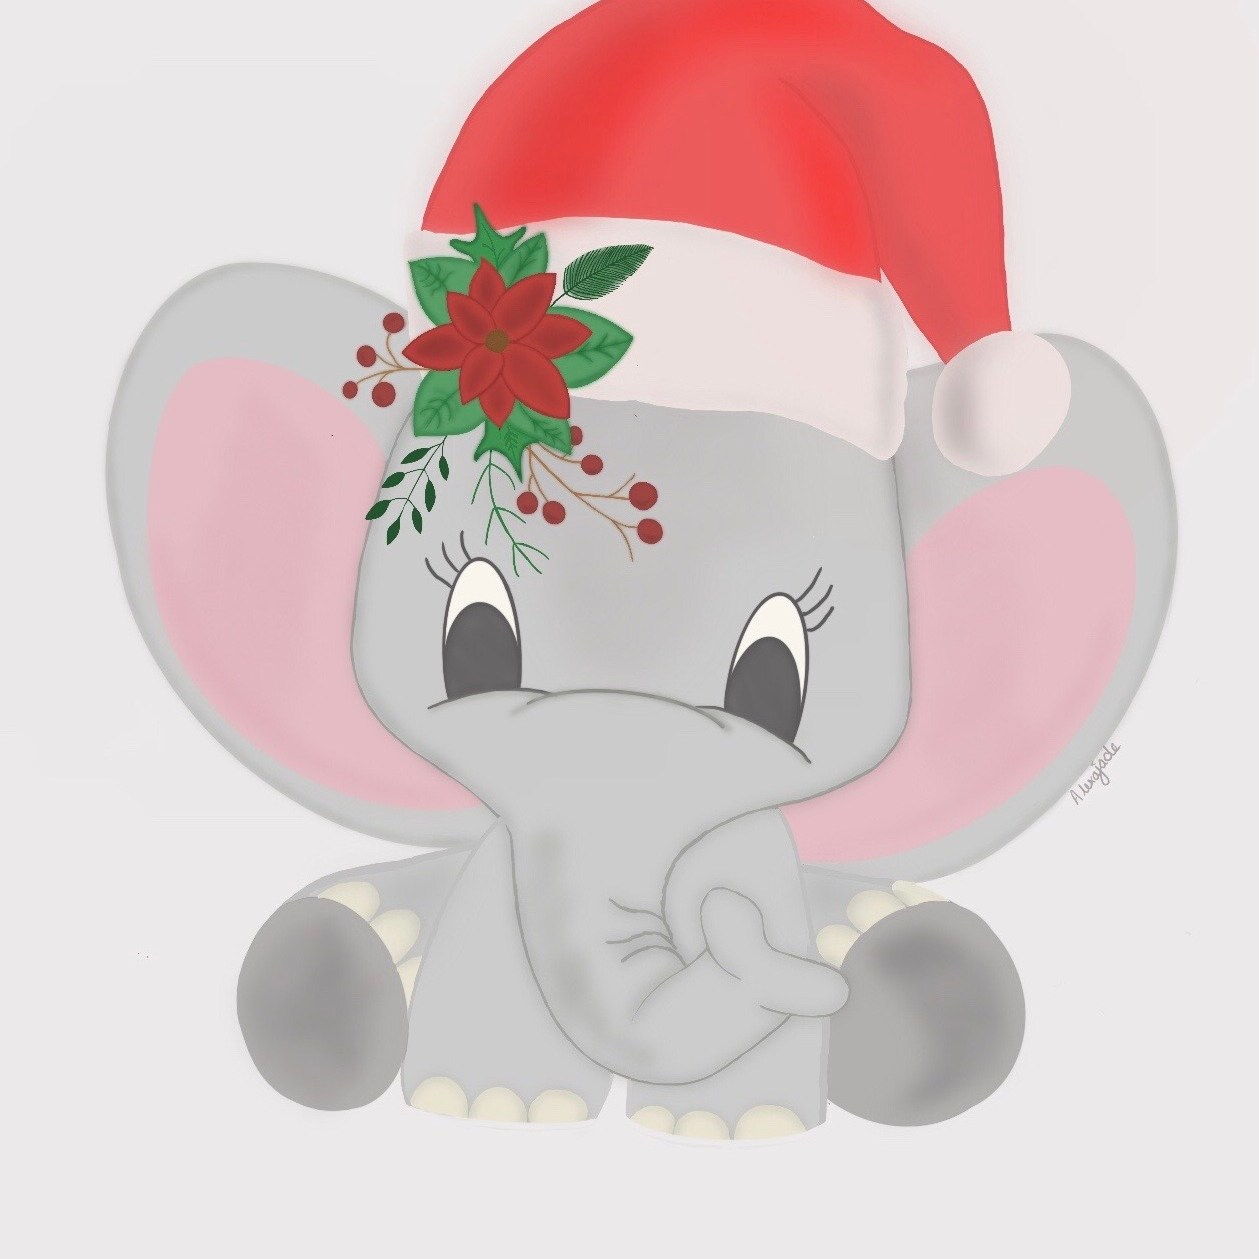 festive digital drawings